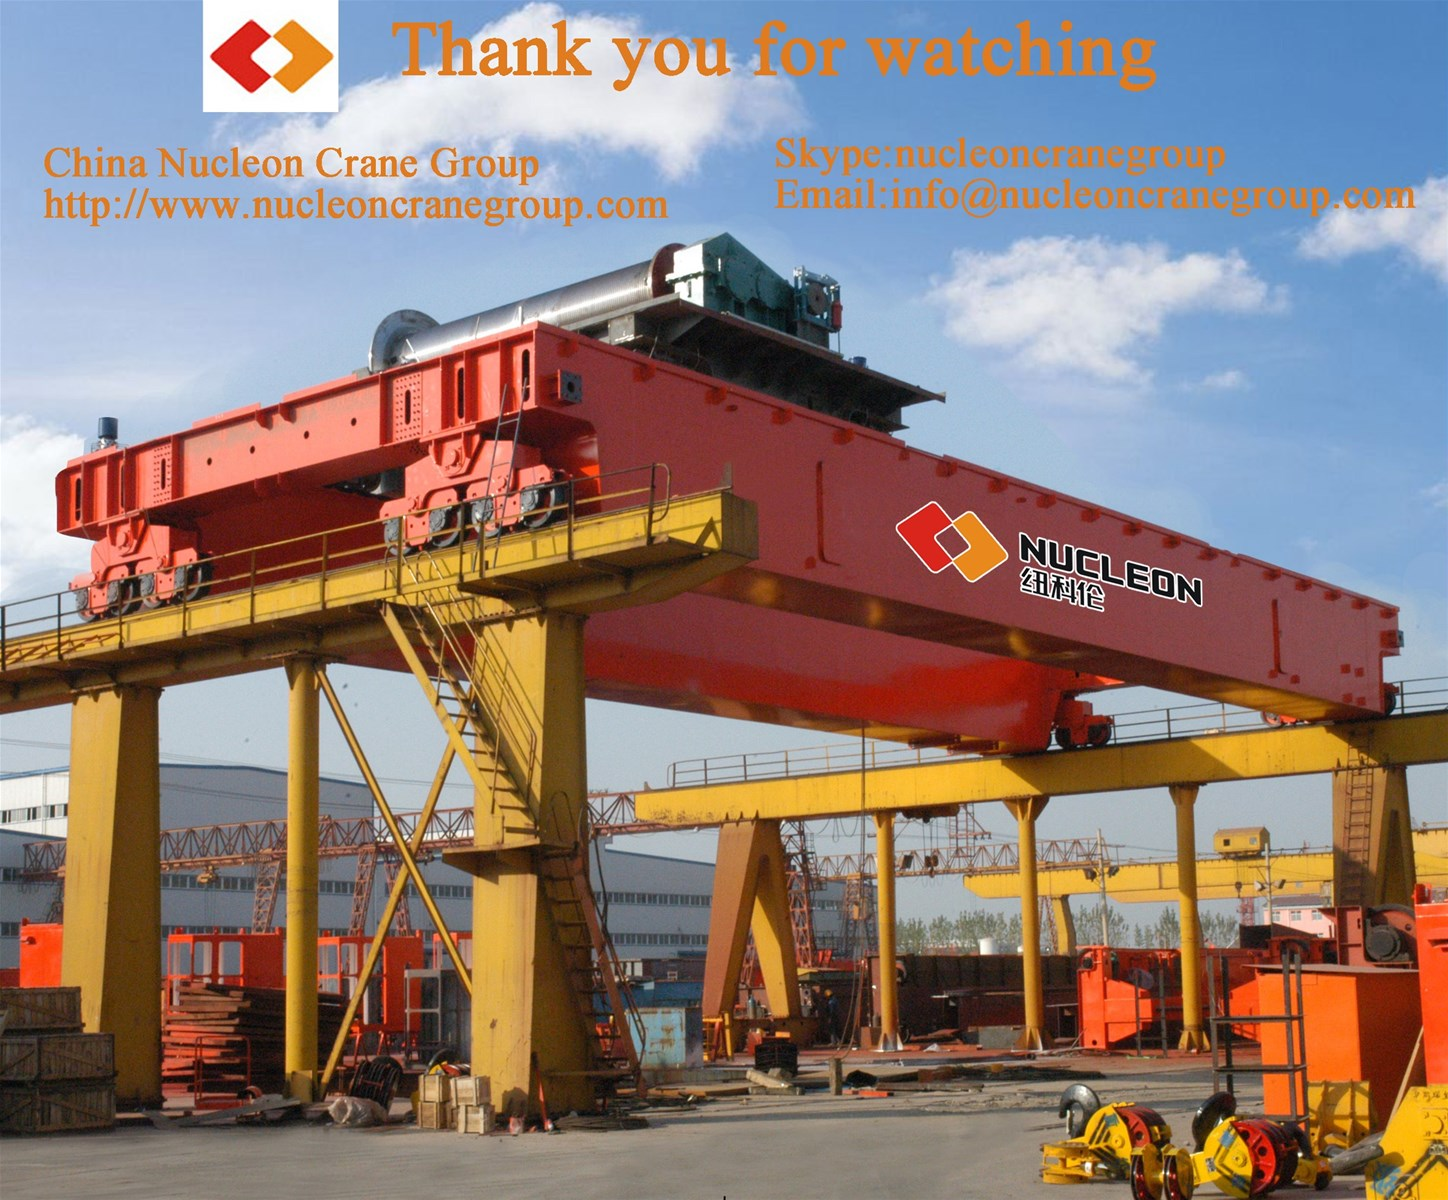 China Nucleoncrane Group